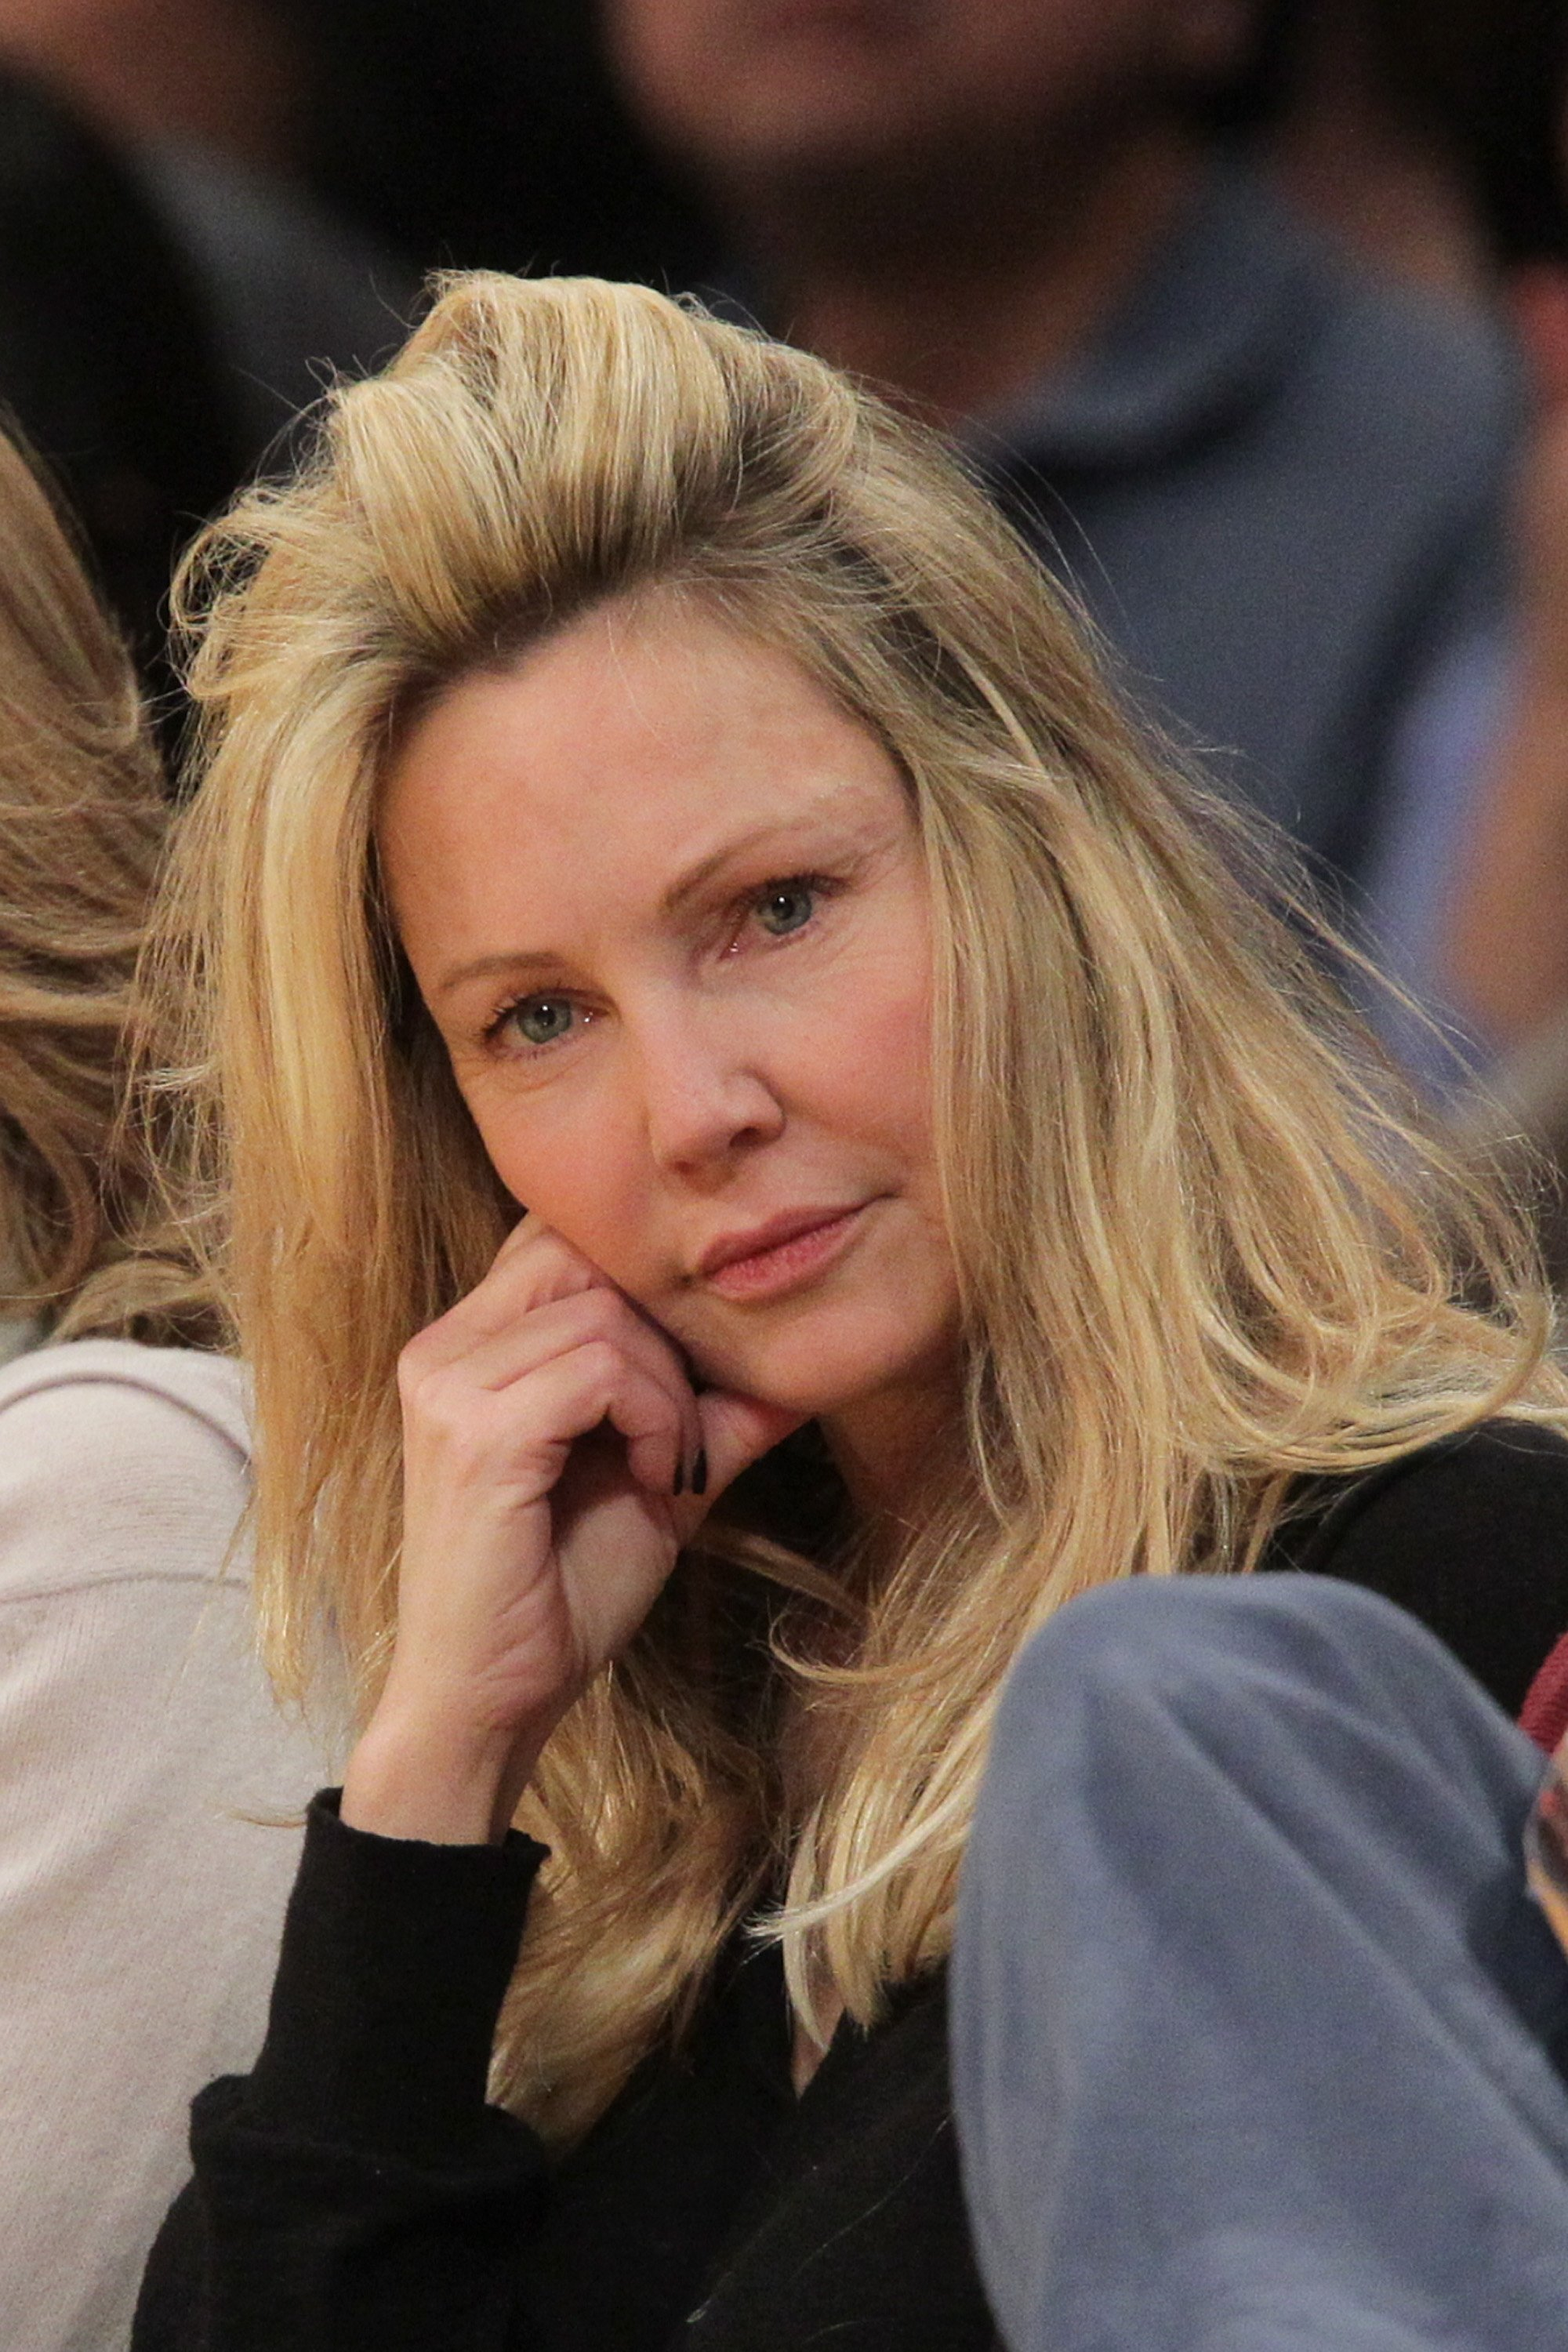 Heather Locklear at an NBA match between the Phoenix Suns and the Los Angeles Lakers in 2012 | Photo: Getty Images